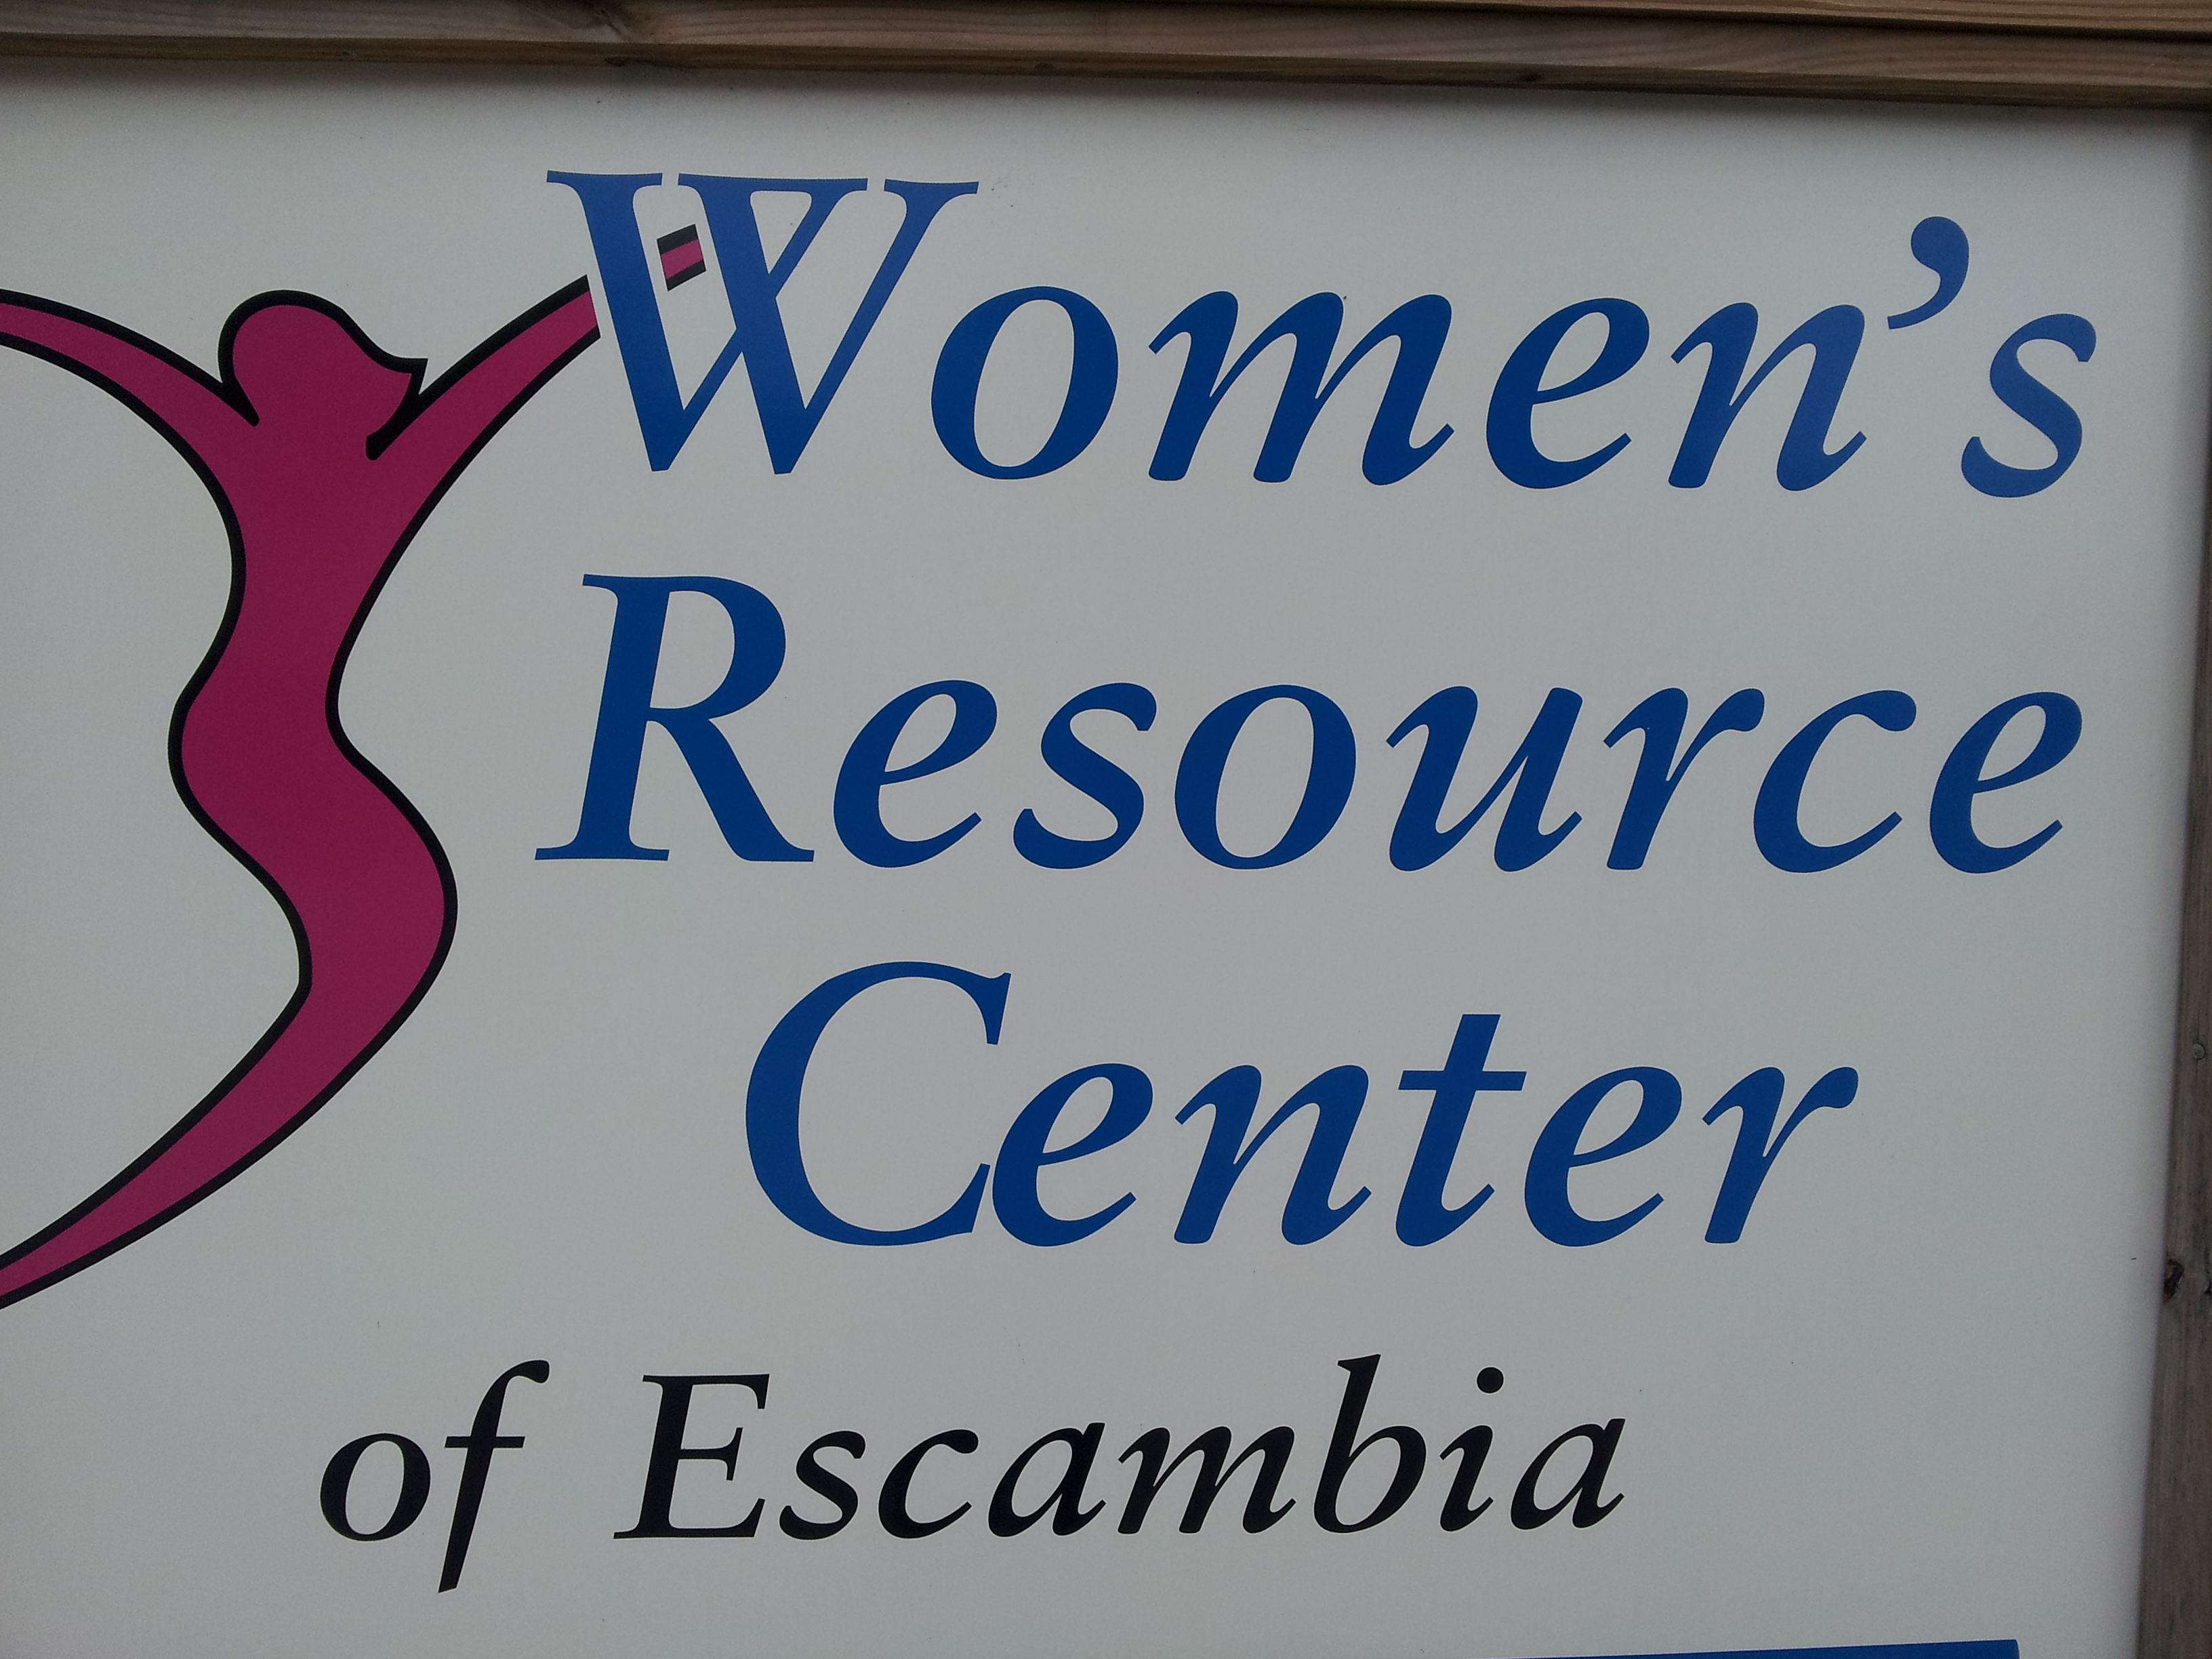 Women's Resource Center of Escambia